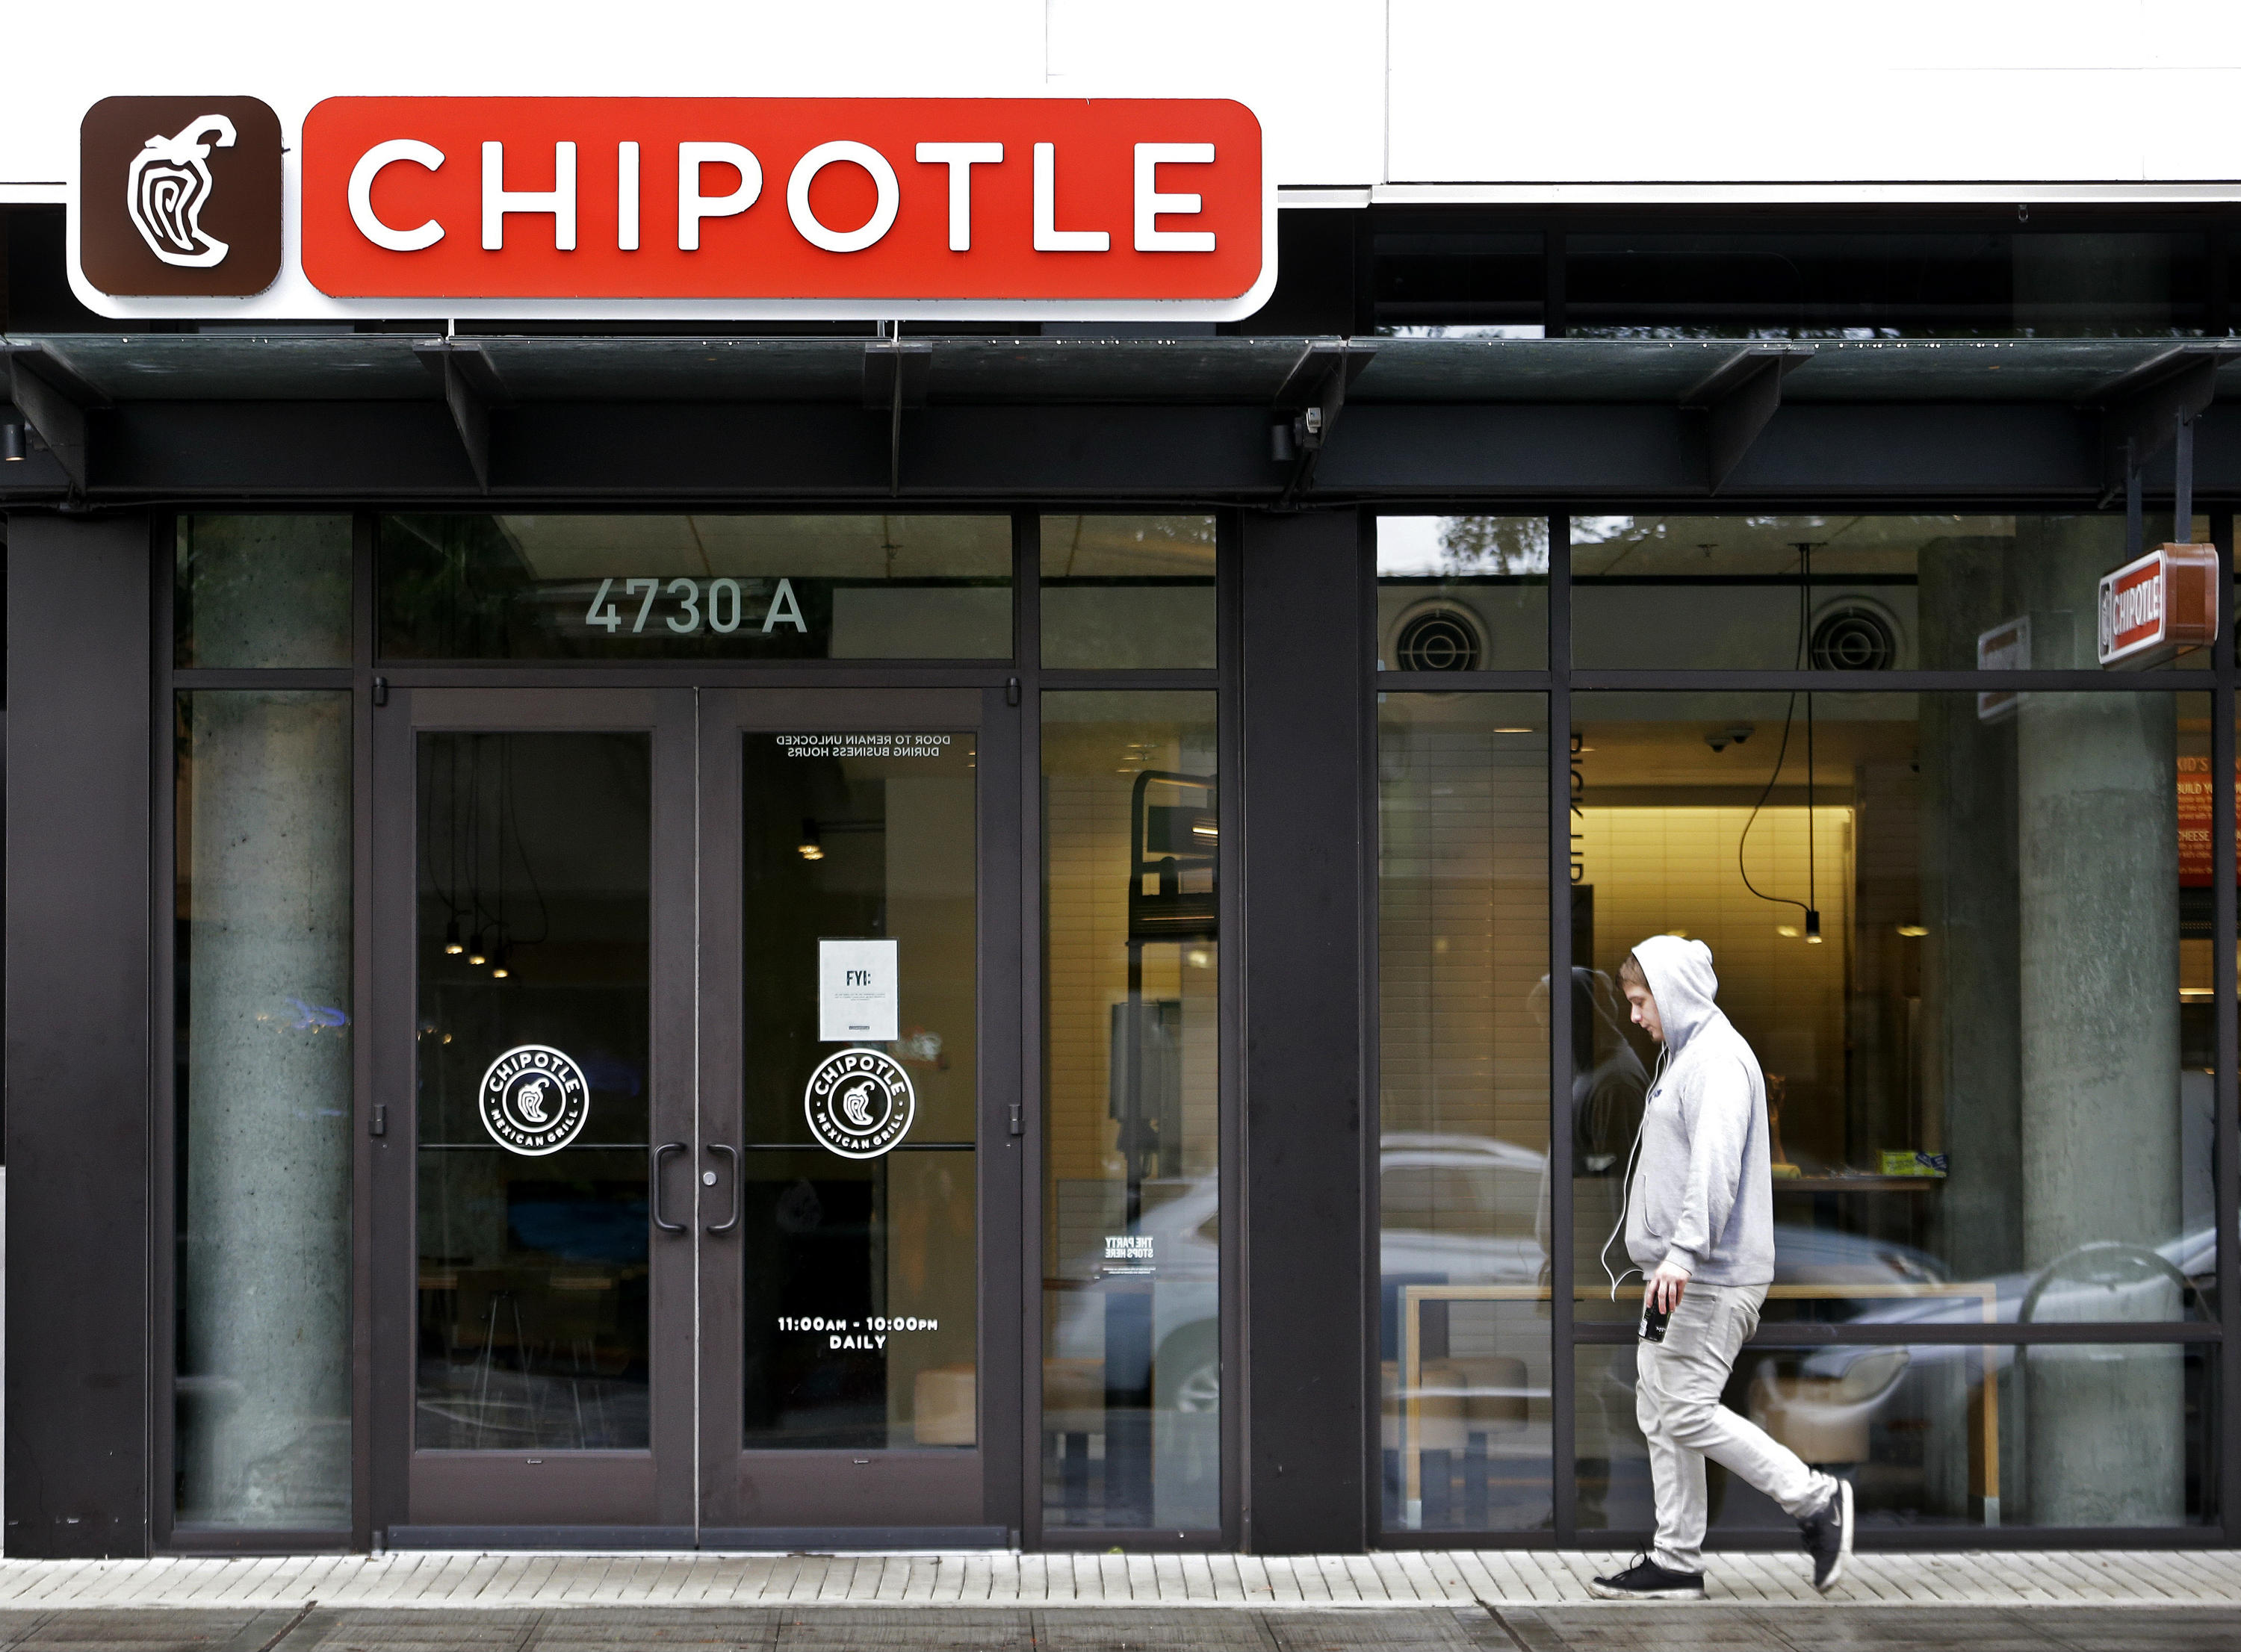 A pedestrian walks past a closed Chipotle restaurant in Seattle on Nov. 2, 2015. Washington state health officials say they have found no source for the E. coli outbreak related to Chipotle and the chain's Pacific Northwest restaurants could reopen later this week. Washington state epidemiologist Dr. Scott Lindquist says all the tests of food from Chipotle stores in Washington and Oregon came back negative for E. coli. (AP Photo/Elaine Thompson)